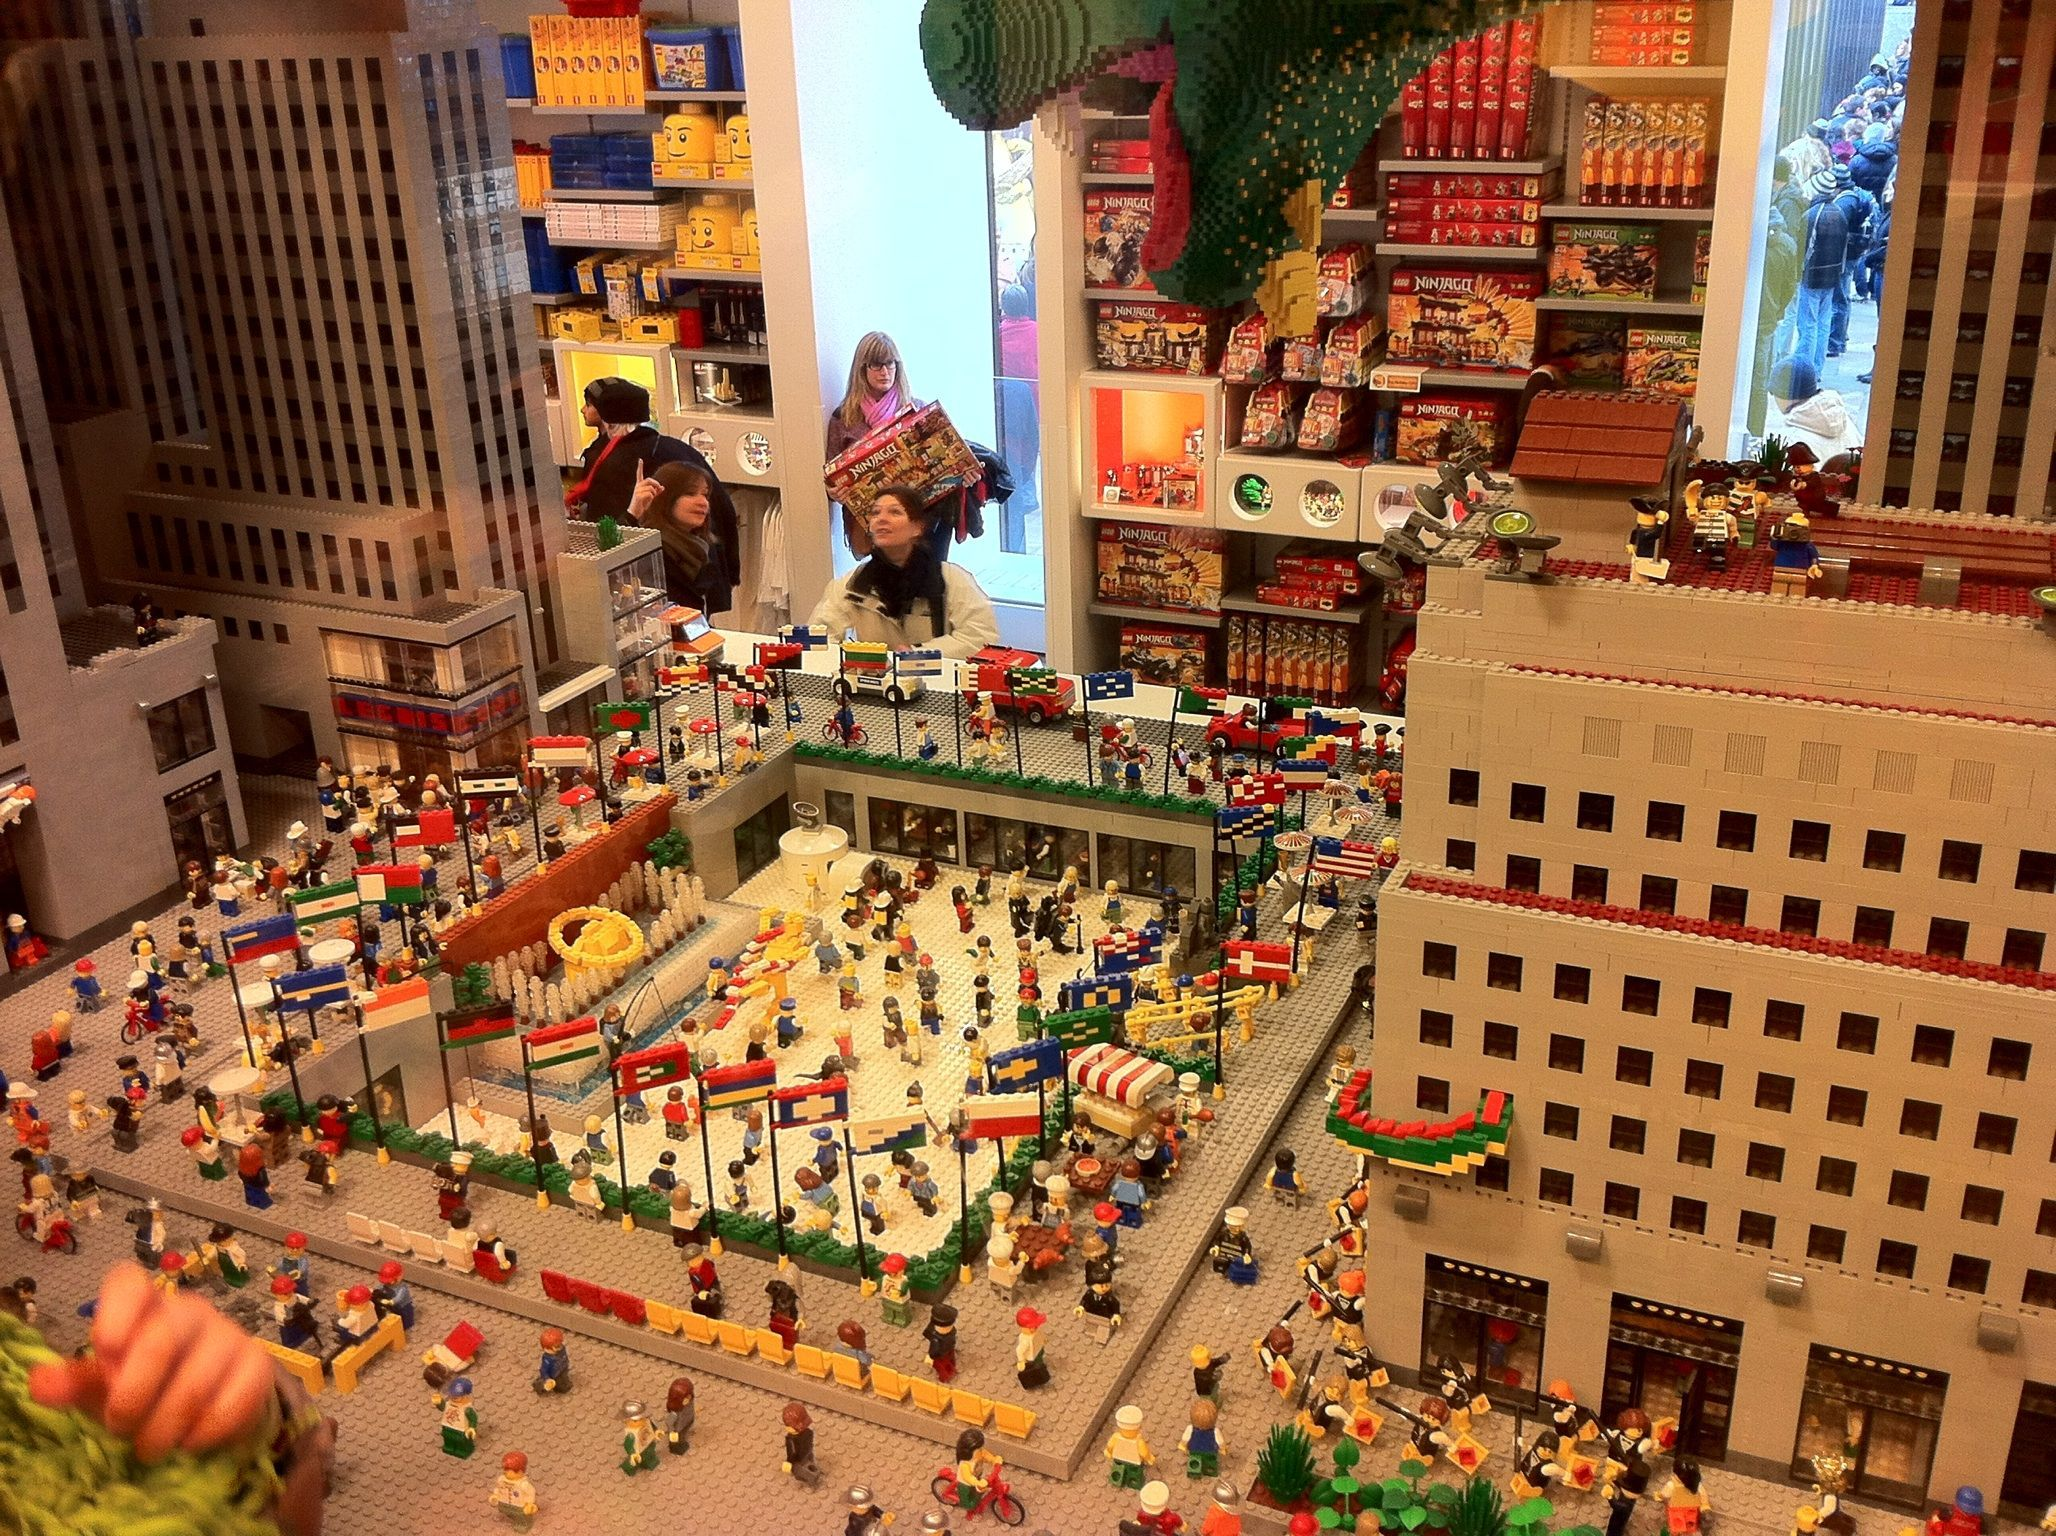 Lego Store Rockfeller Plaza Nyc Times Square New York Lego Store Dream Vacations